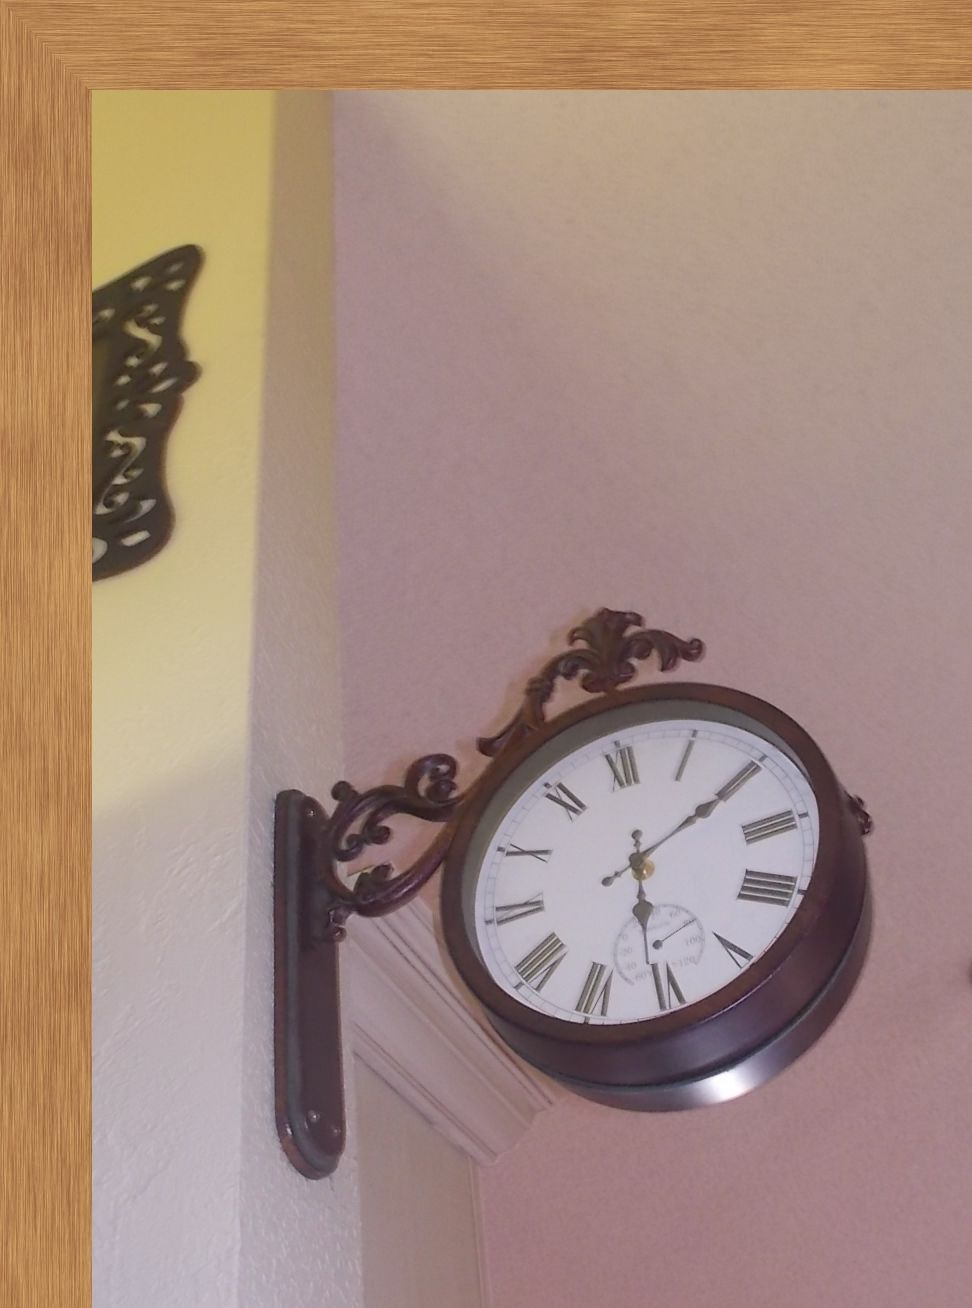 Fleur De Lis clock helps bring in hardware that juts out into the upper space giving authenticity and distracting the narrowness of the space